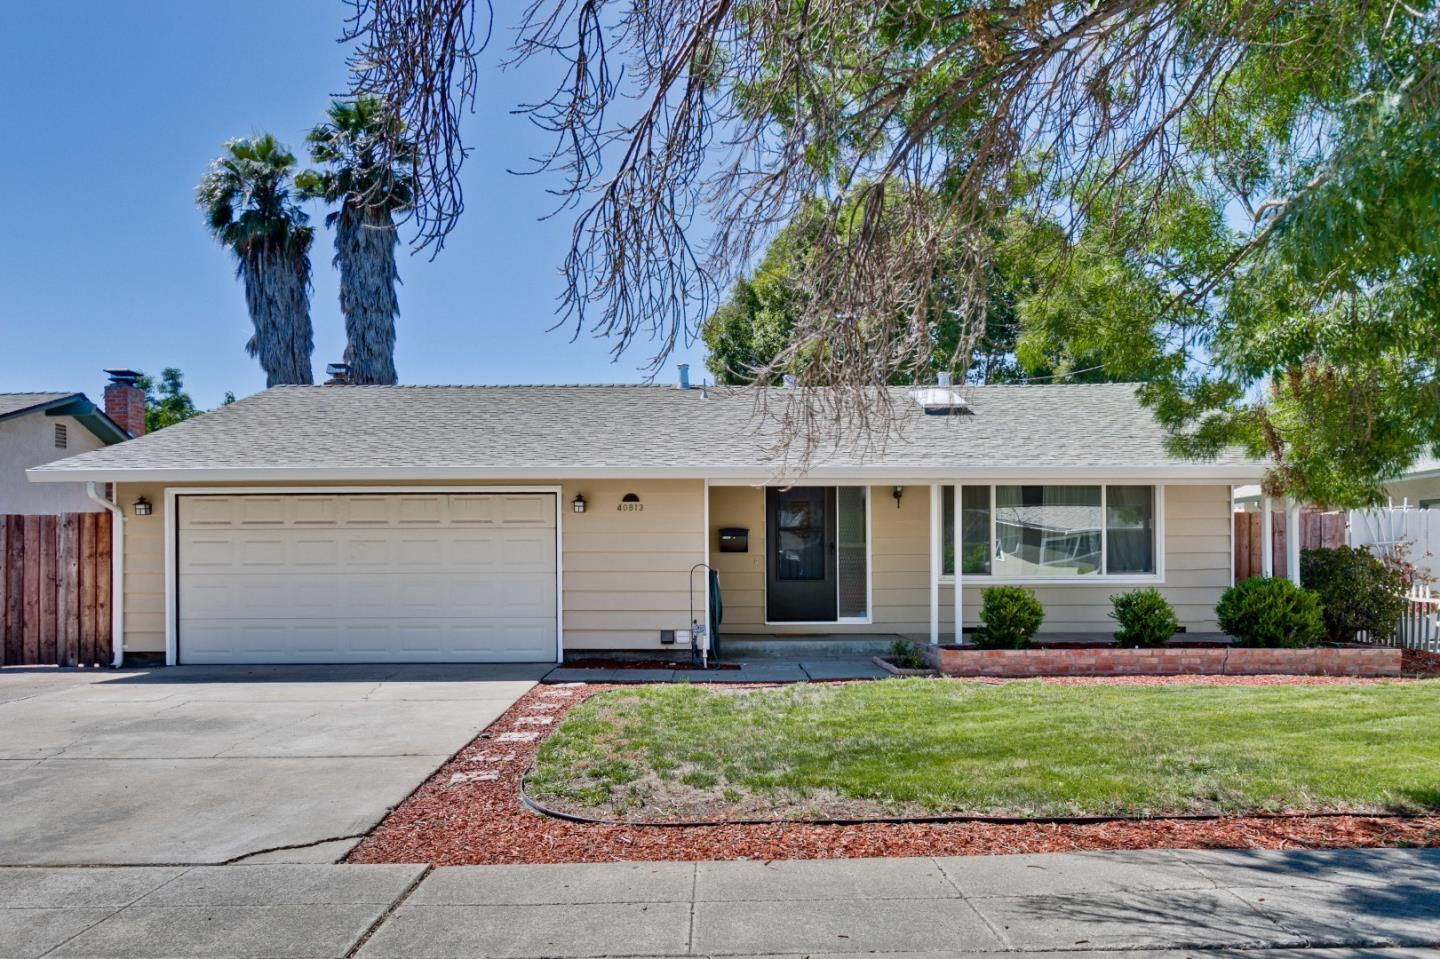 Single Family Home for Sale at 40813 Robin Street Fremont, California 94538 United States